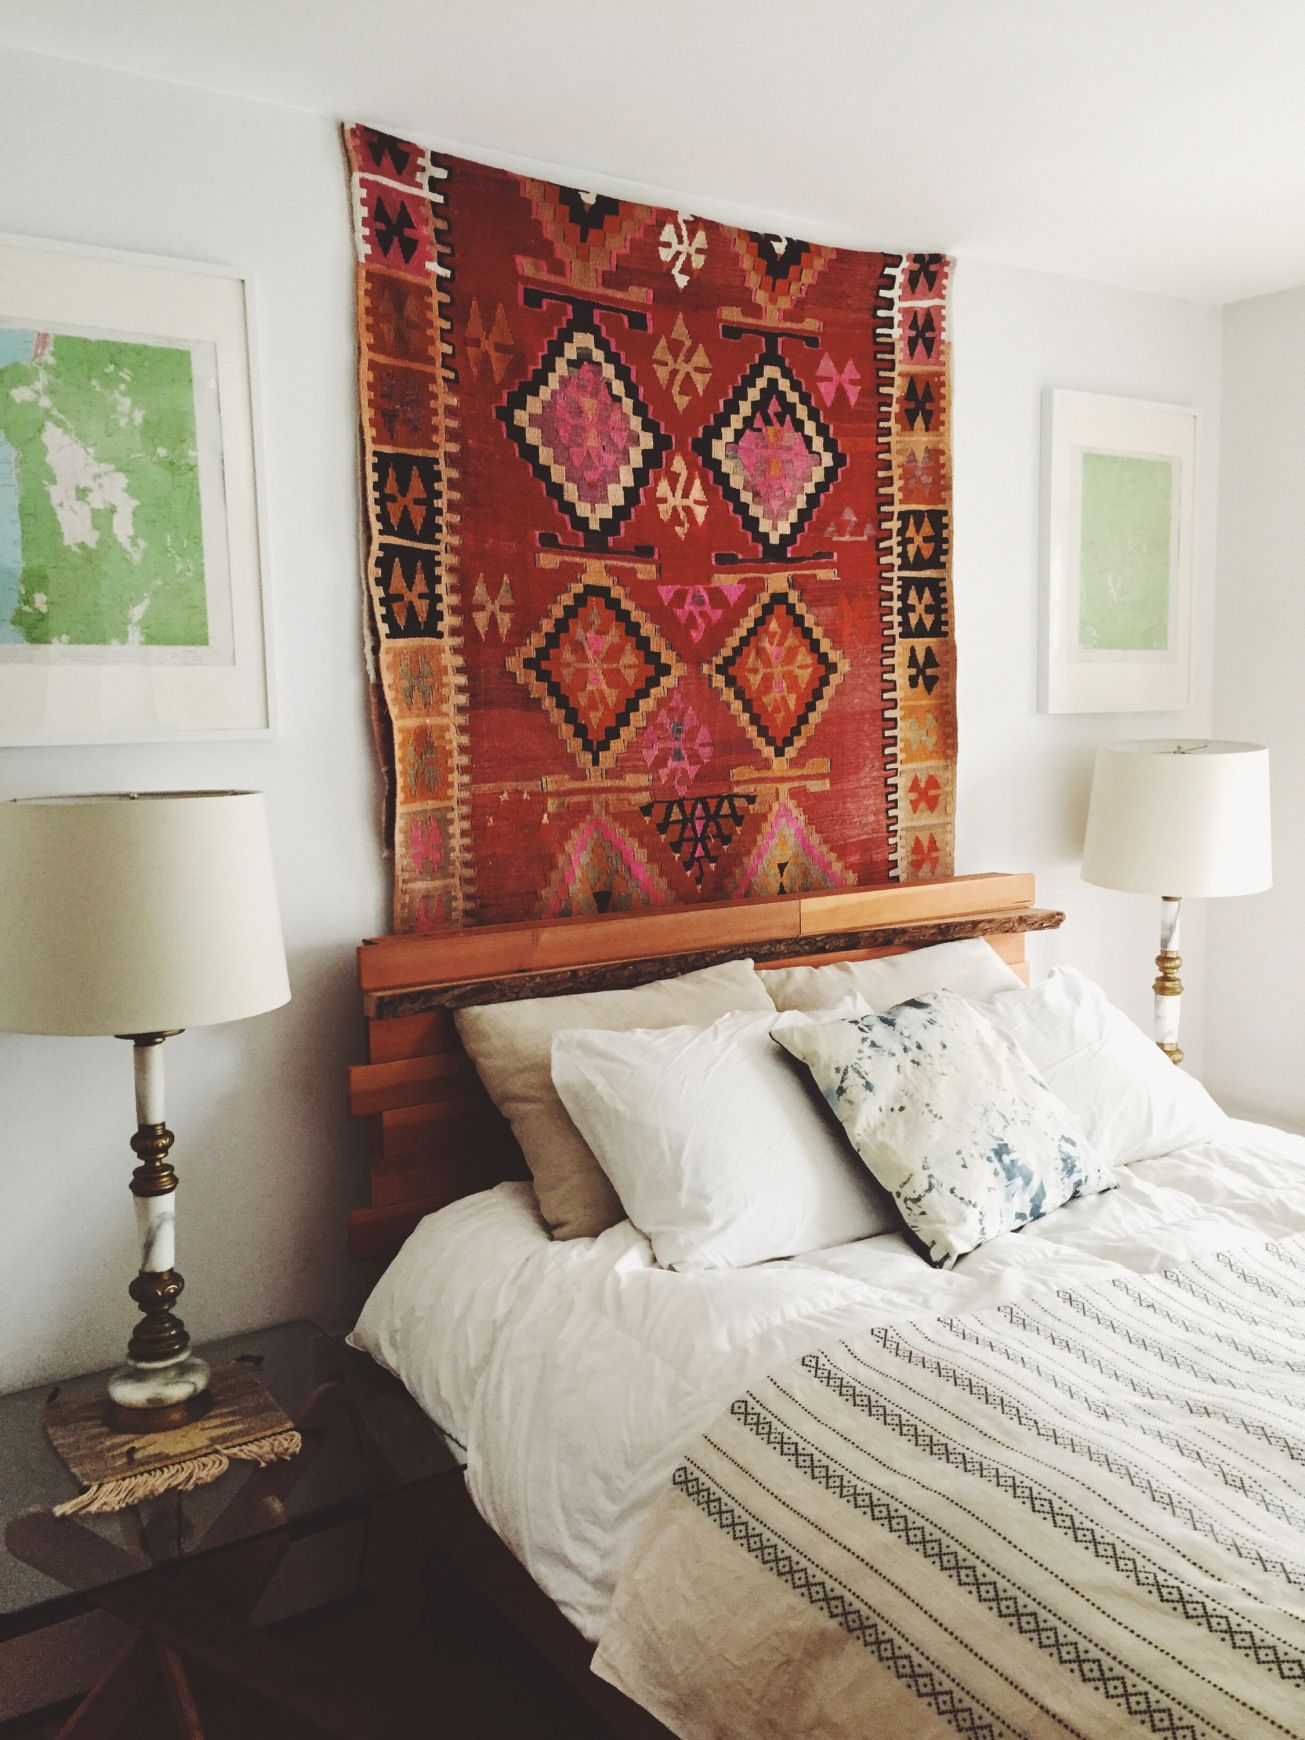 Kilim Rugs Add Contrast And Definition To The Spaces With